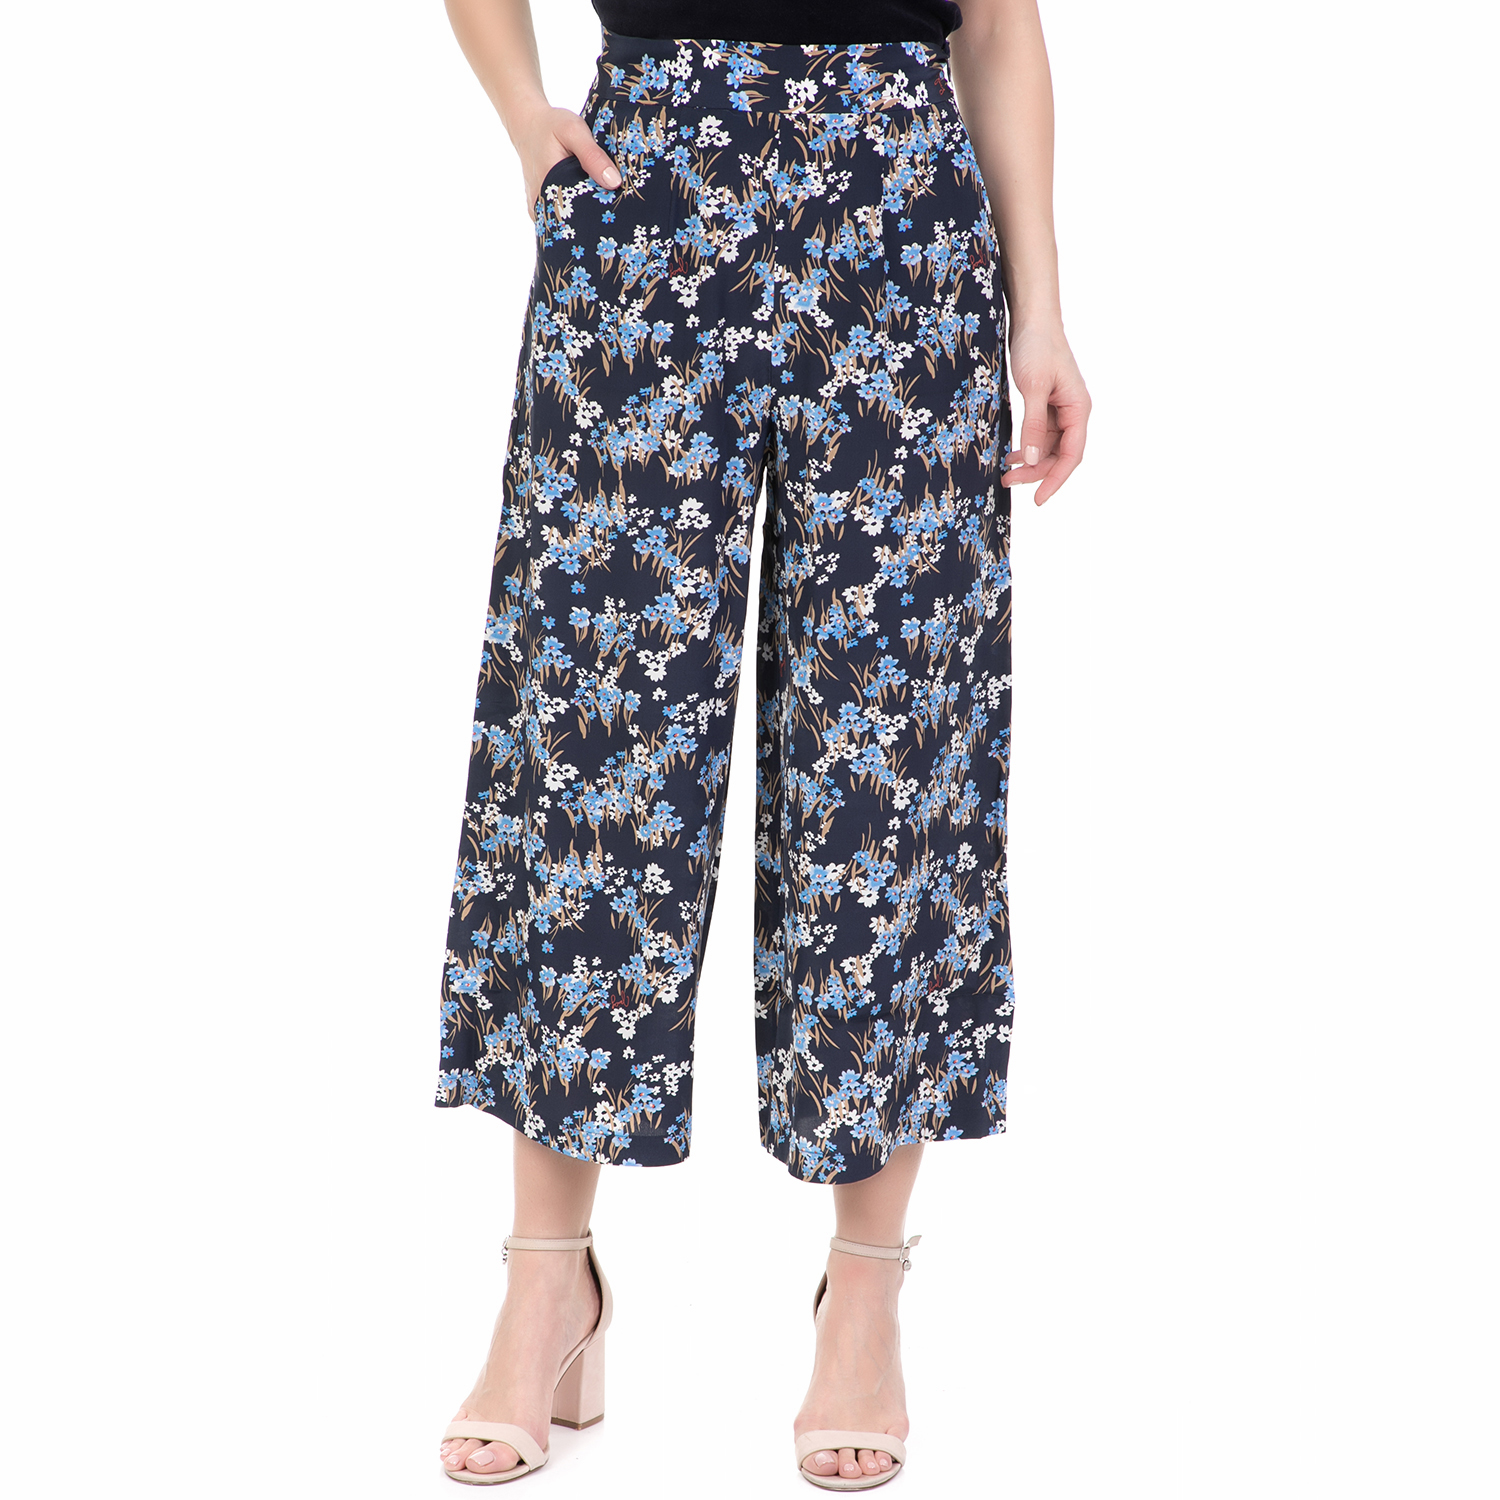 JUICY COUTURE - Γυναικεία ζιπ κιλότ ASTER FLORAL WIDE JUICY COUTURE φλοράλ γυναικεία ρούχα παντελόνια cropped